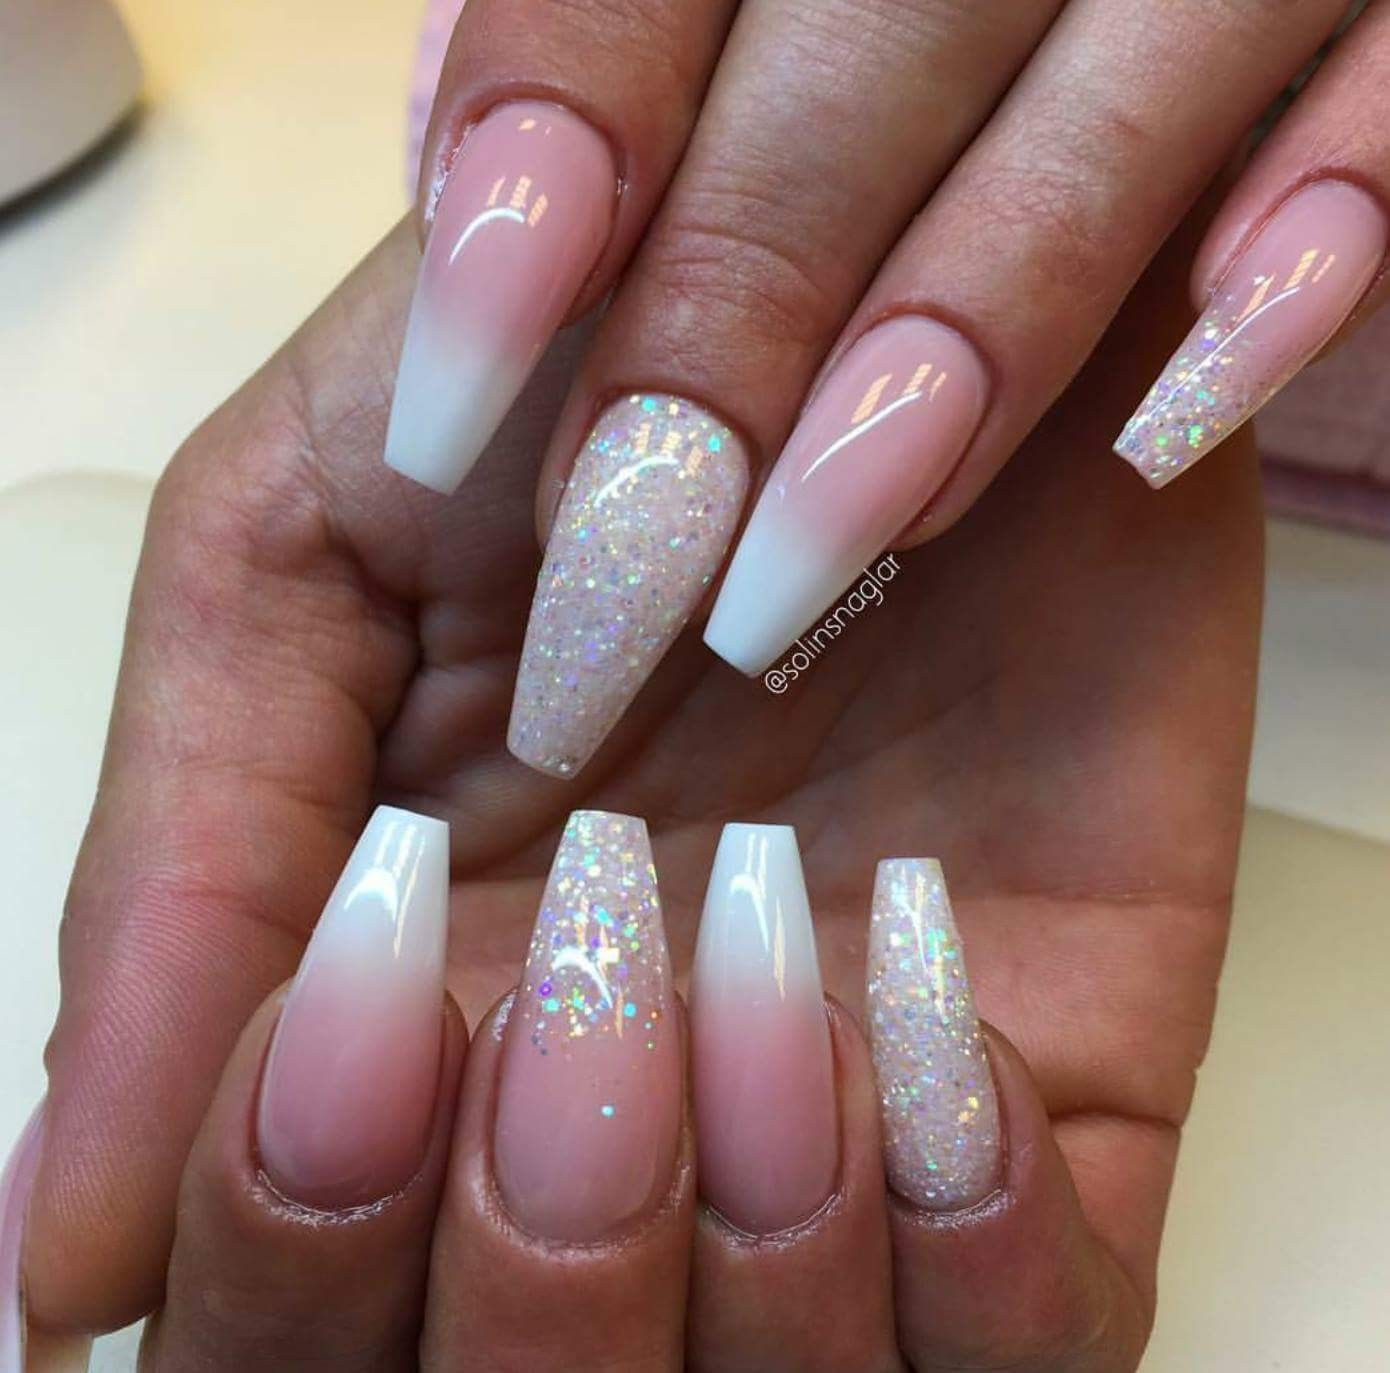 Pin By Eva On Nechty Pink Ombre Nails Ombre Nails Glitter Manicure